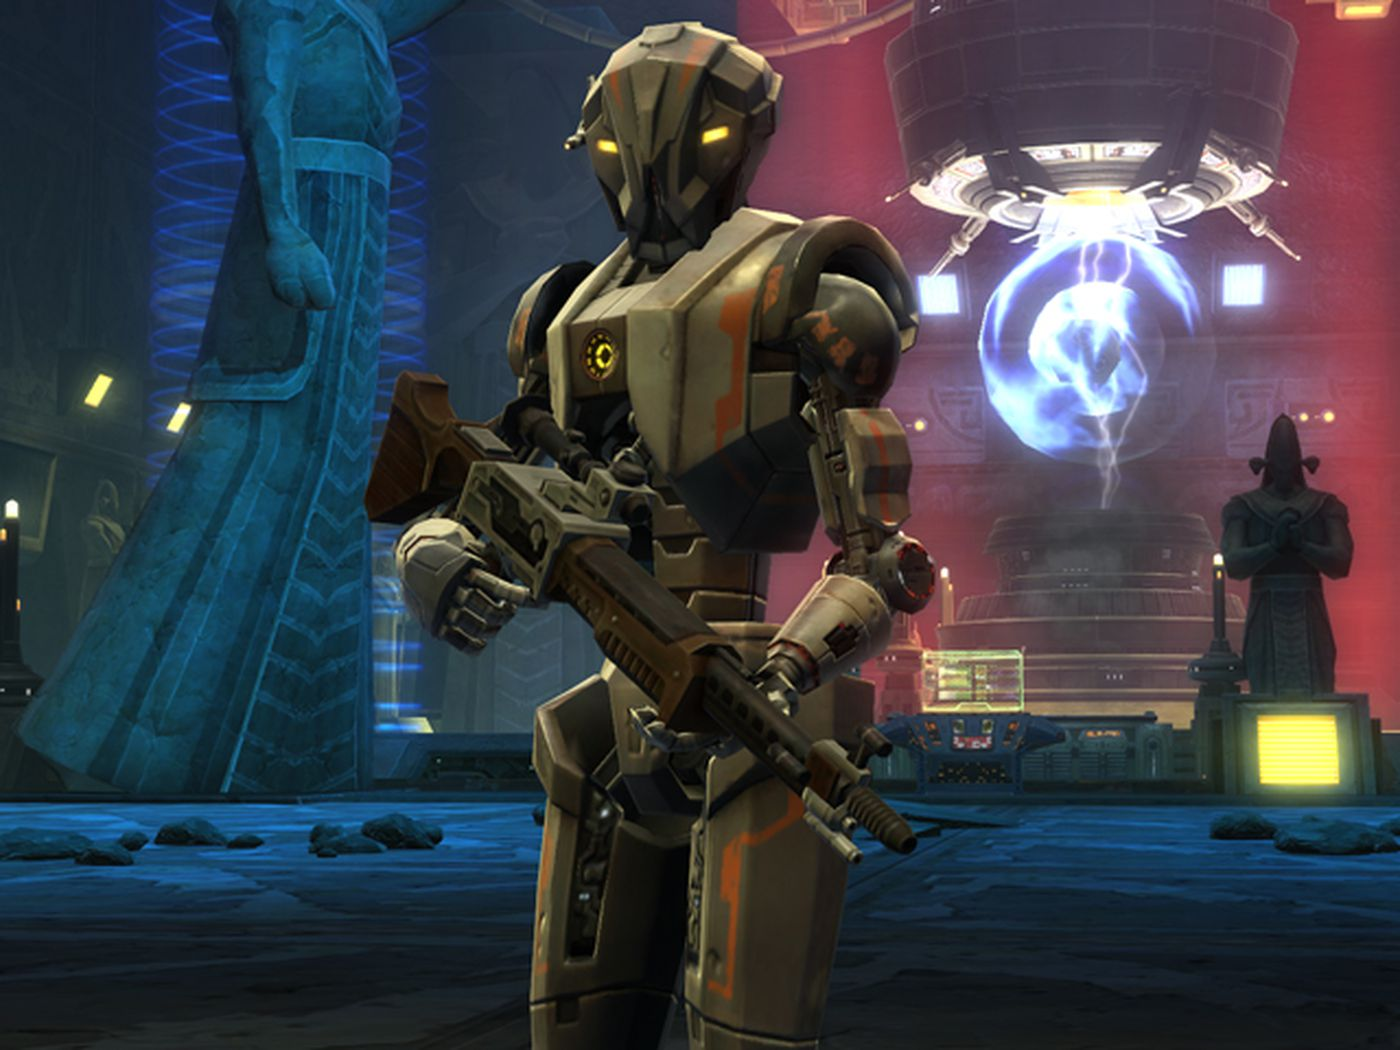 Star Wars The Old Republic 1 5 Update Activates Hk 51 Assassination Droid Polygon